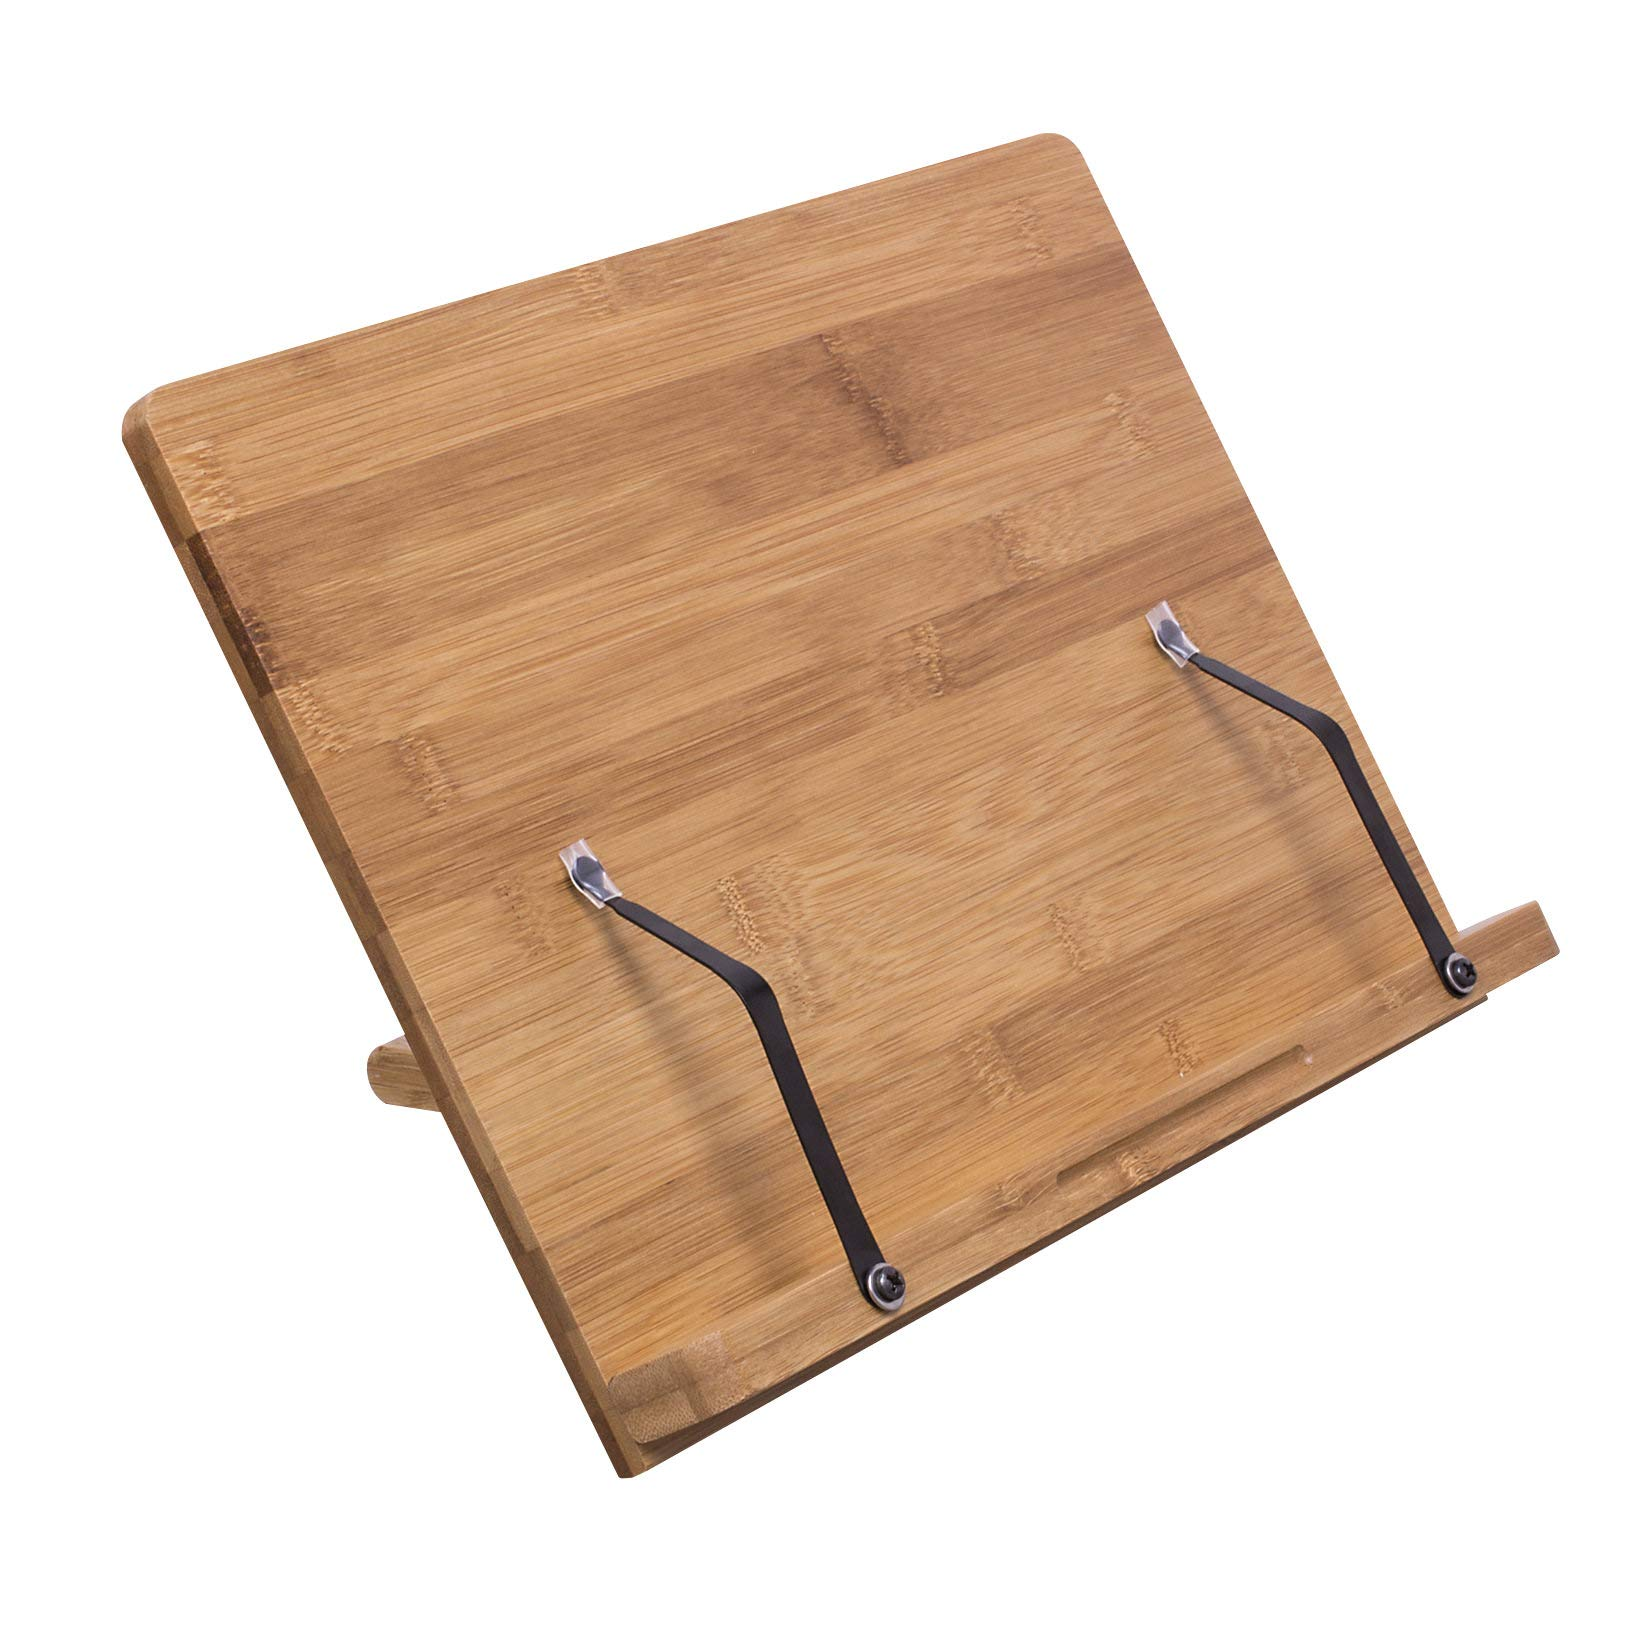 Book Stand Bamboo Recipe Cookbook Holder Stand Kitchen Adjustable Bookrest Reading Rest for Books Tablets Or Smartphones Documents iPads